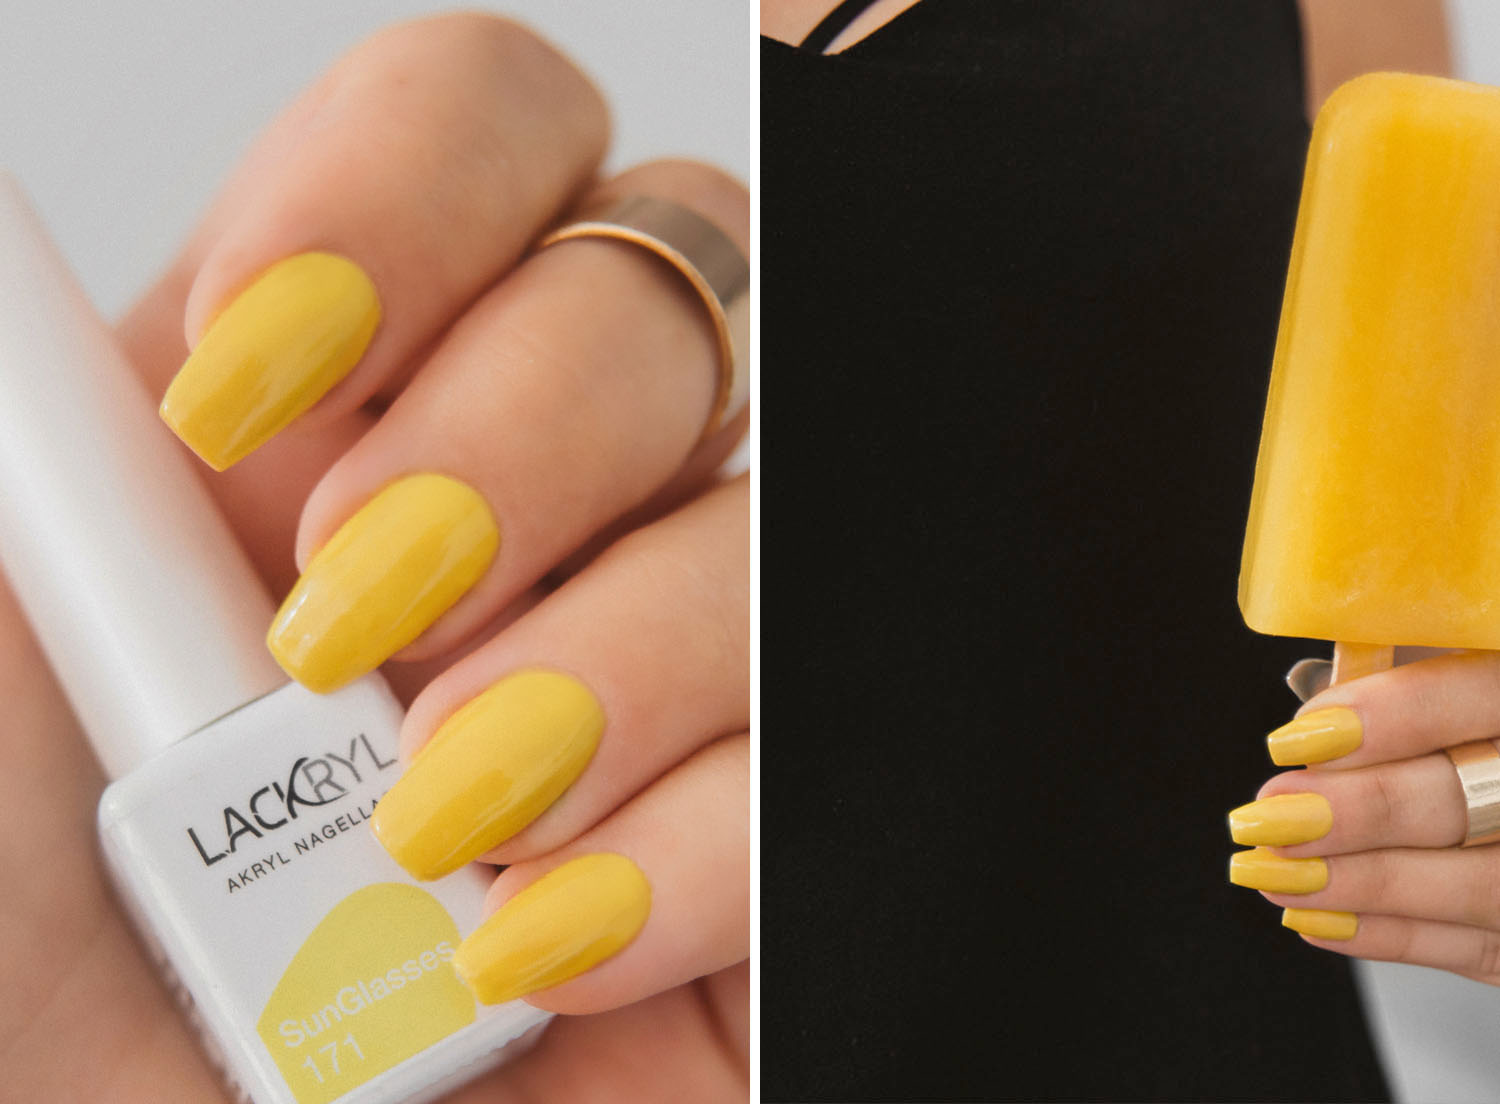 Lackryl Sunglasses - Yellow Nails